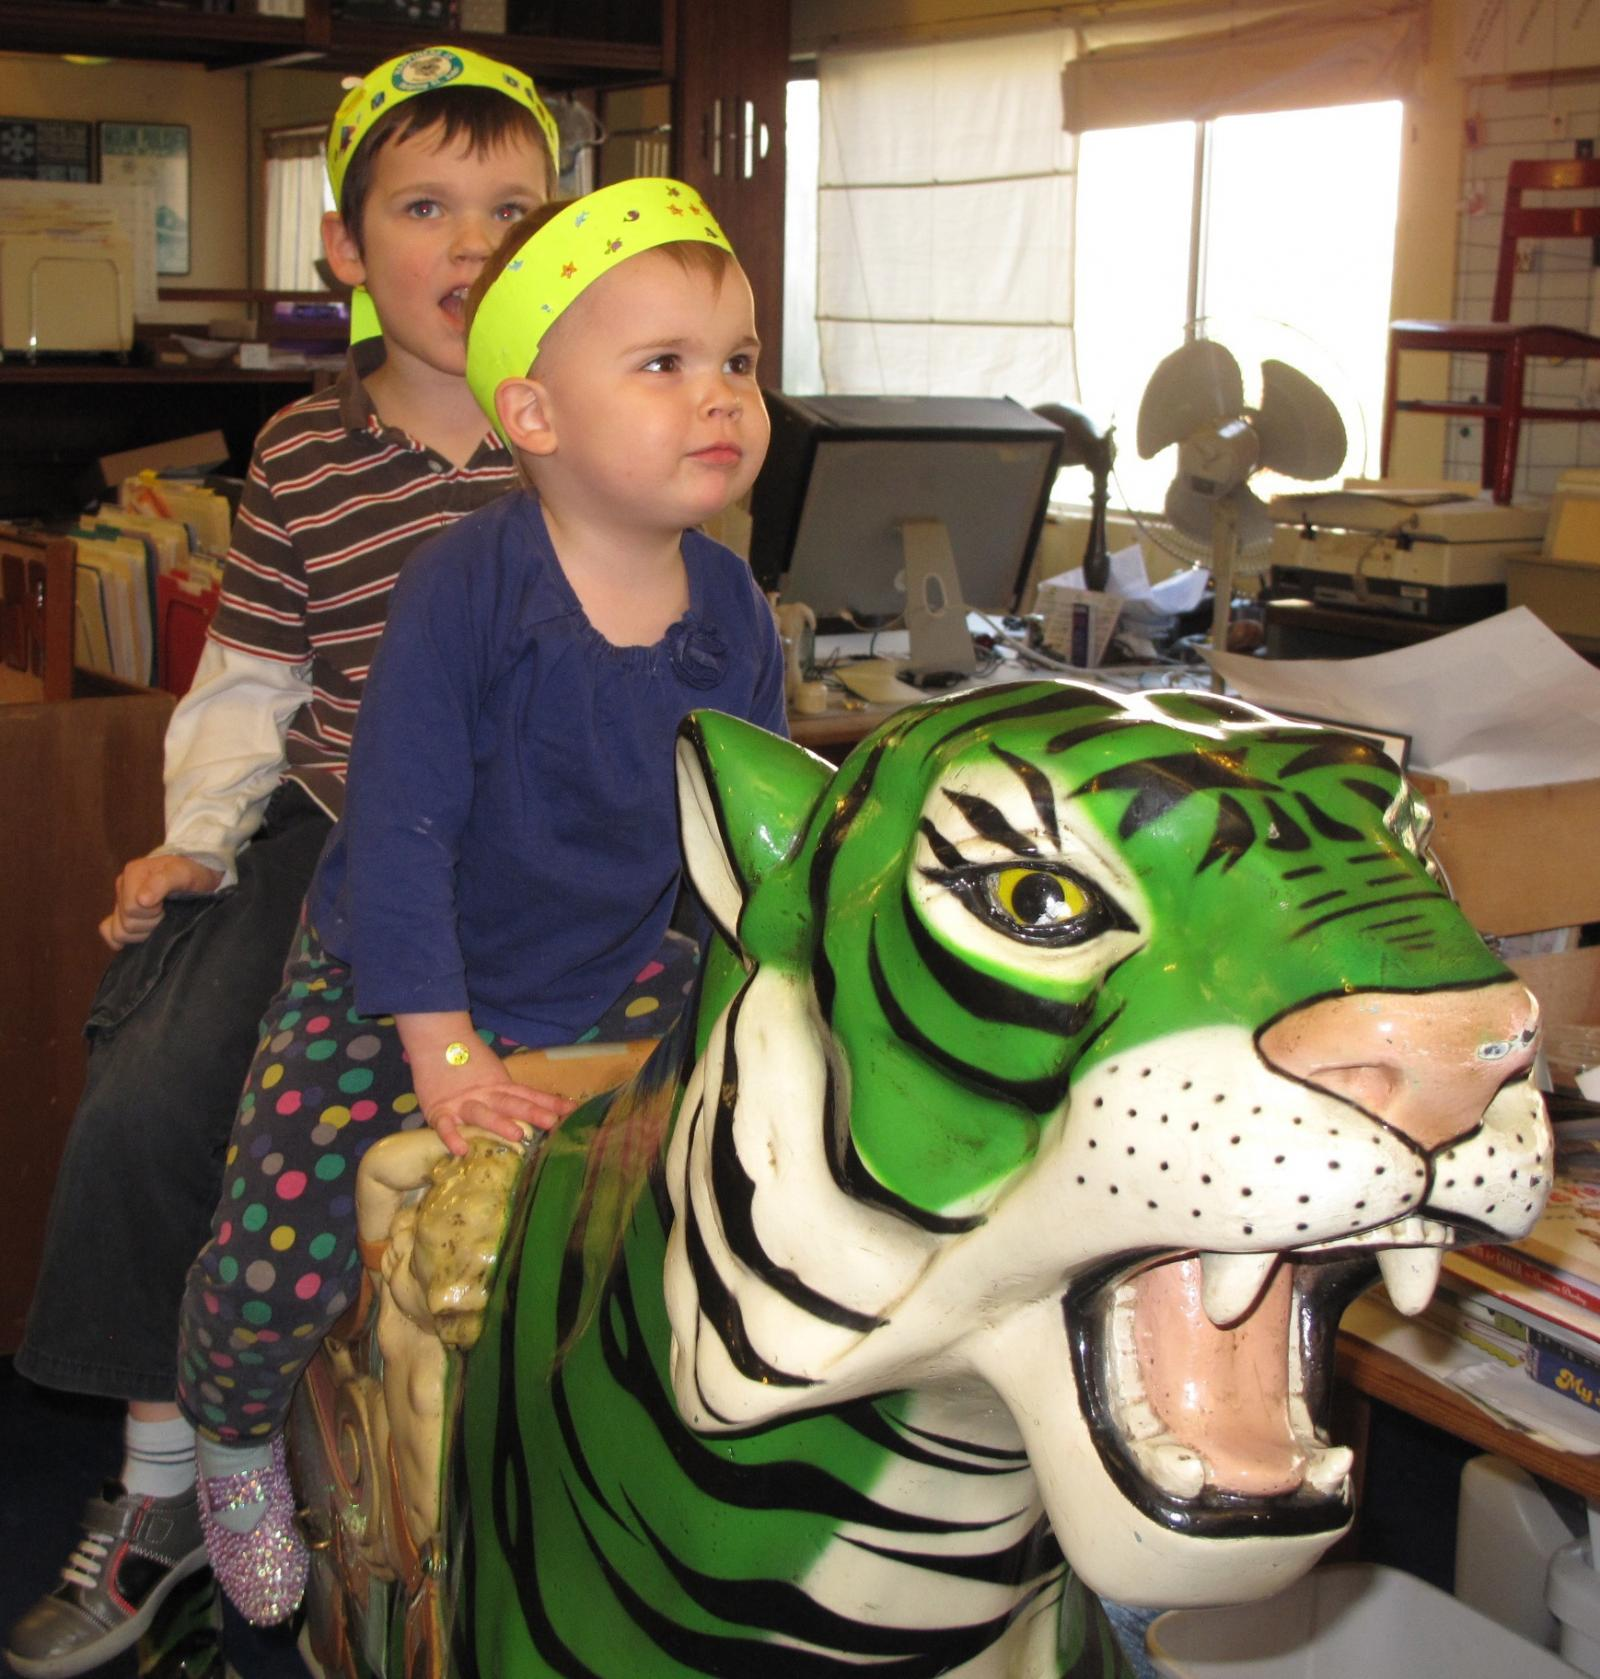 Penelope and Declan on the Green Tiger